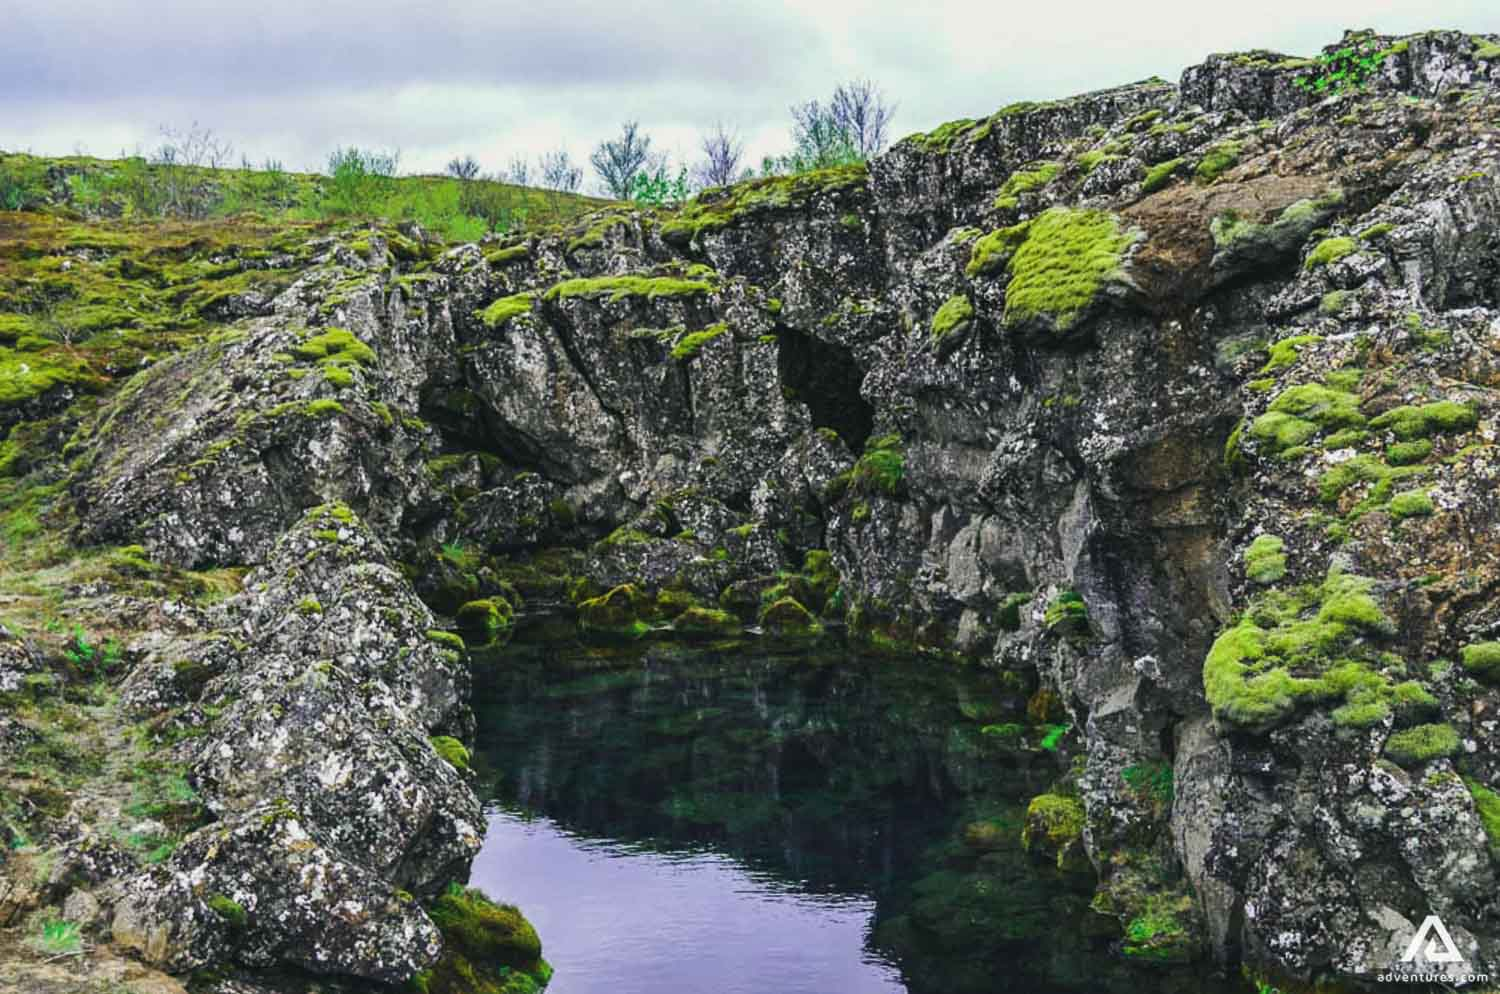 Tingvellir National Park autumn flora and moss covered